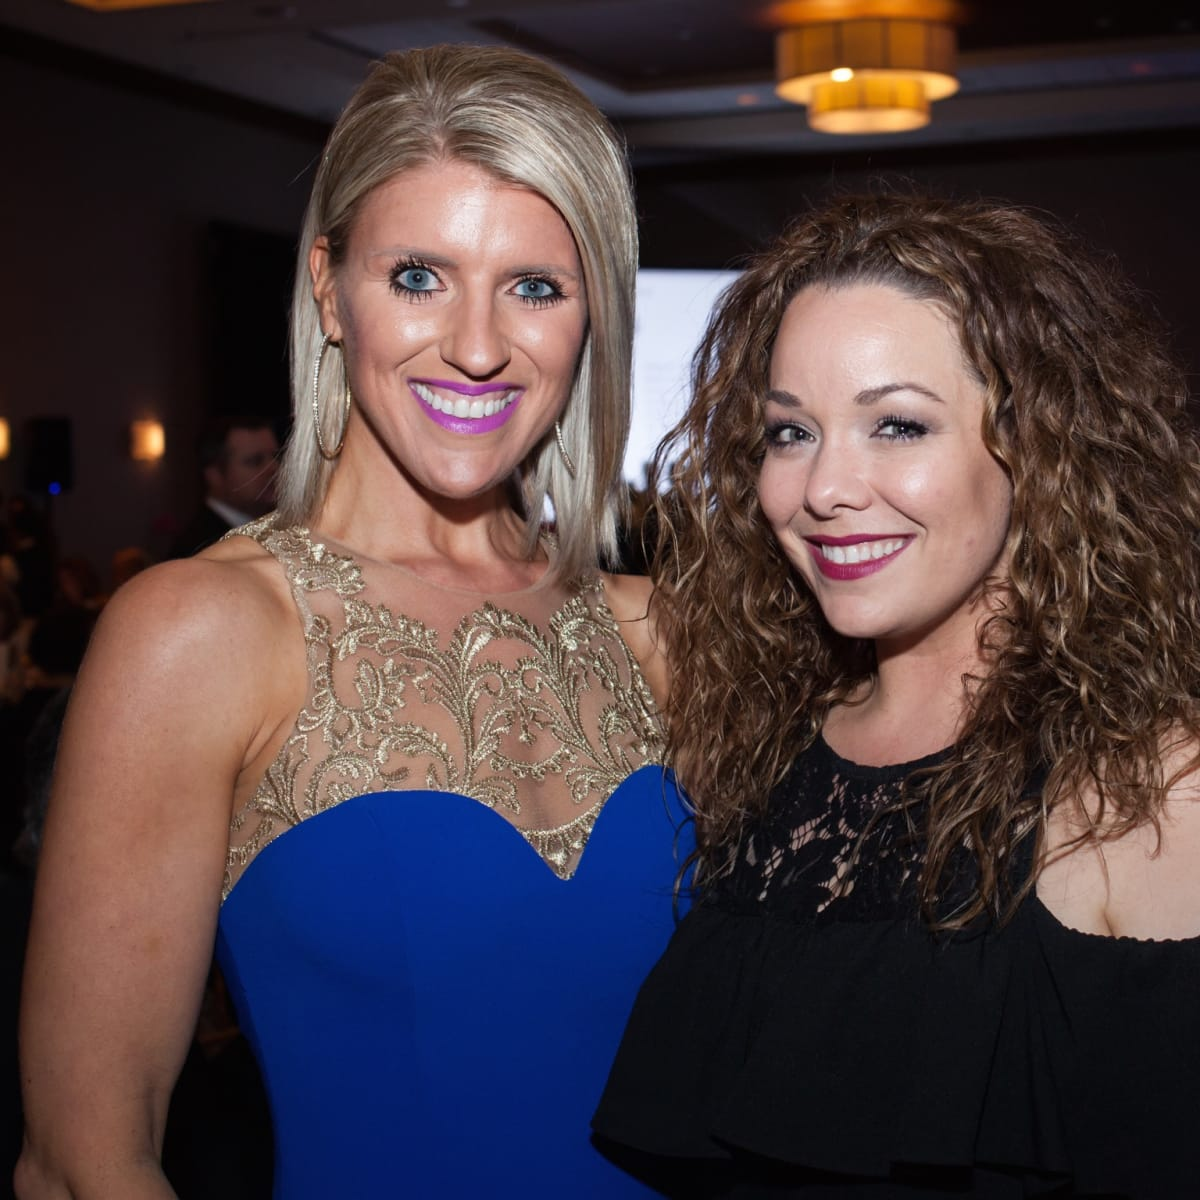 Rescue Houston founder Allison Madrigal and Tiffany Pardue at Elijah Rising Gala